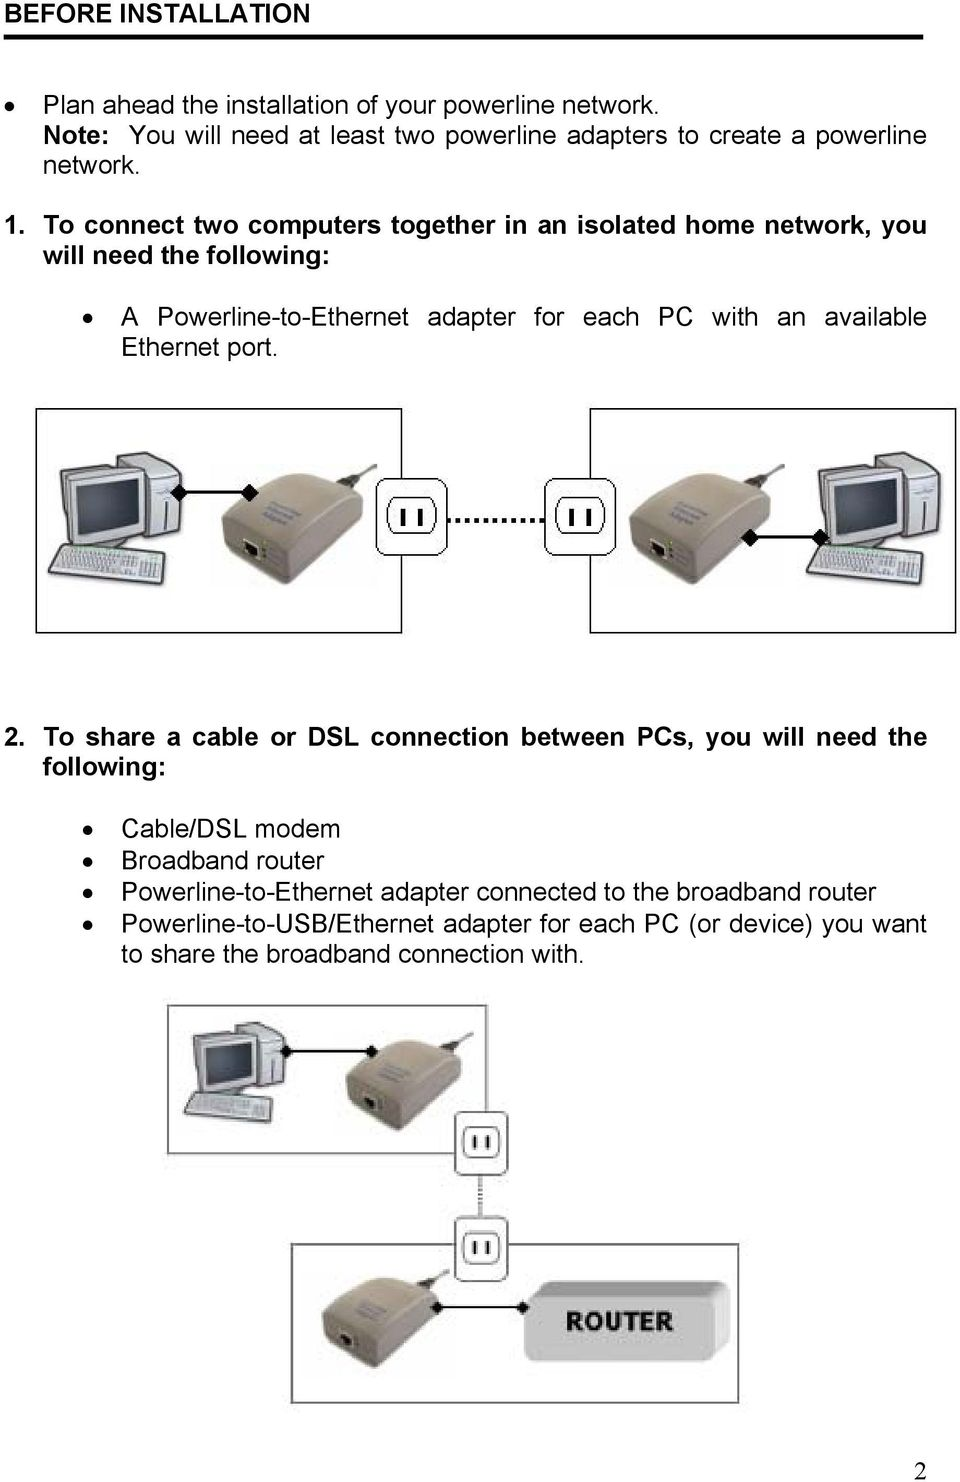 To connect two computers together in an isolated home network, you will need the following: A Powerline-to-Ethernet adapter for each PC with an available